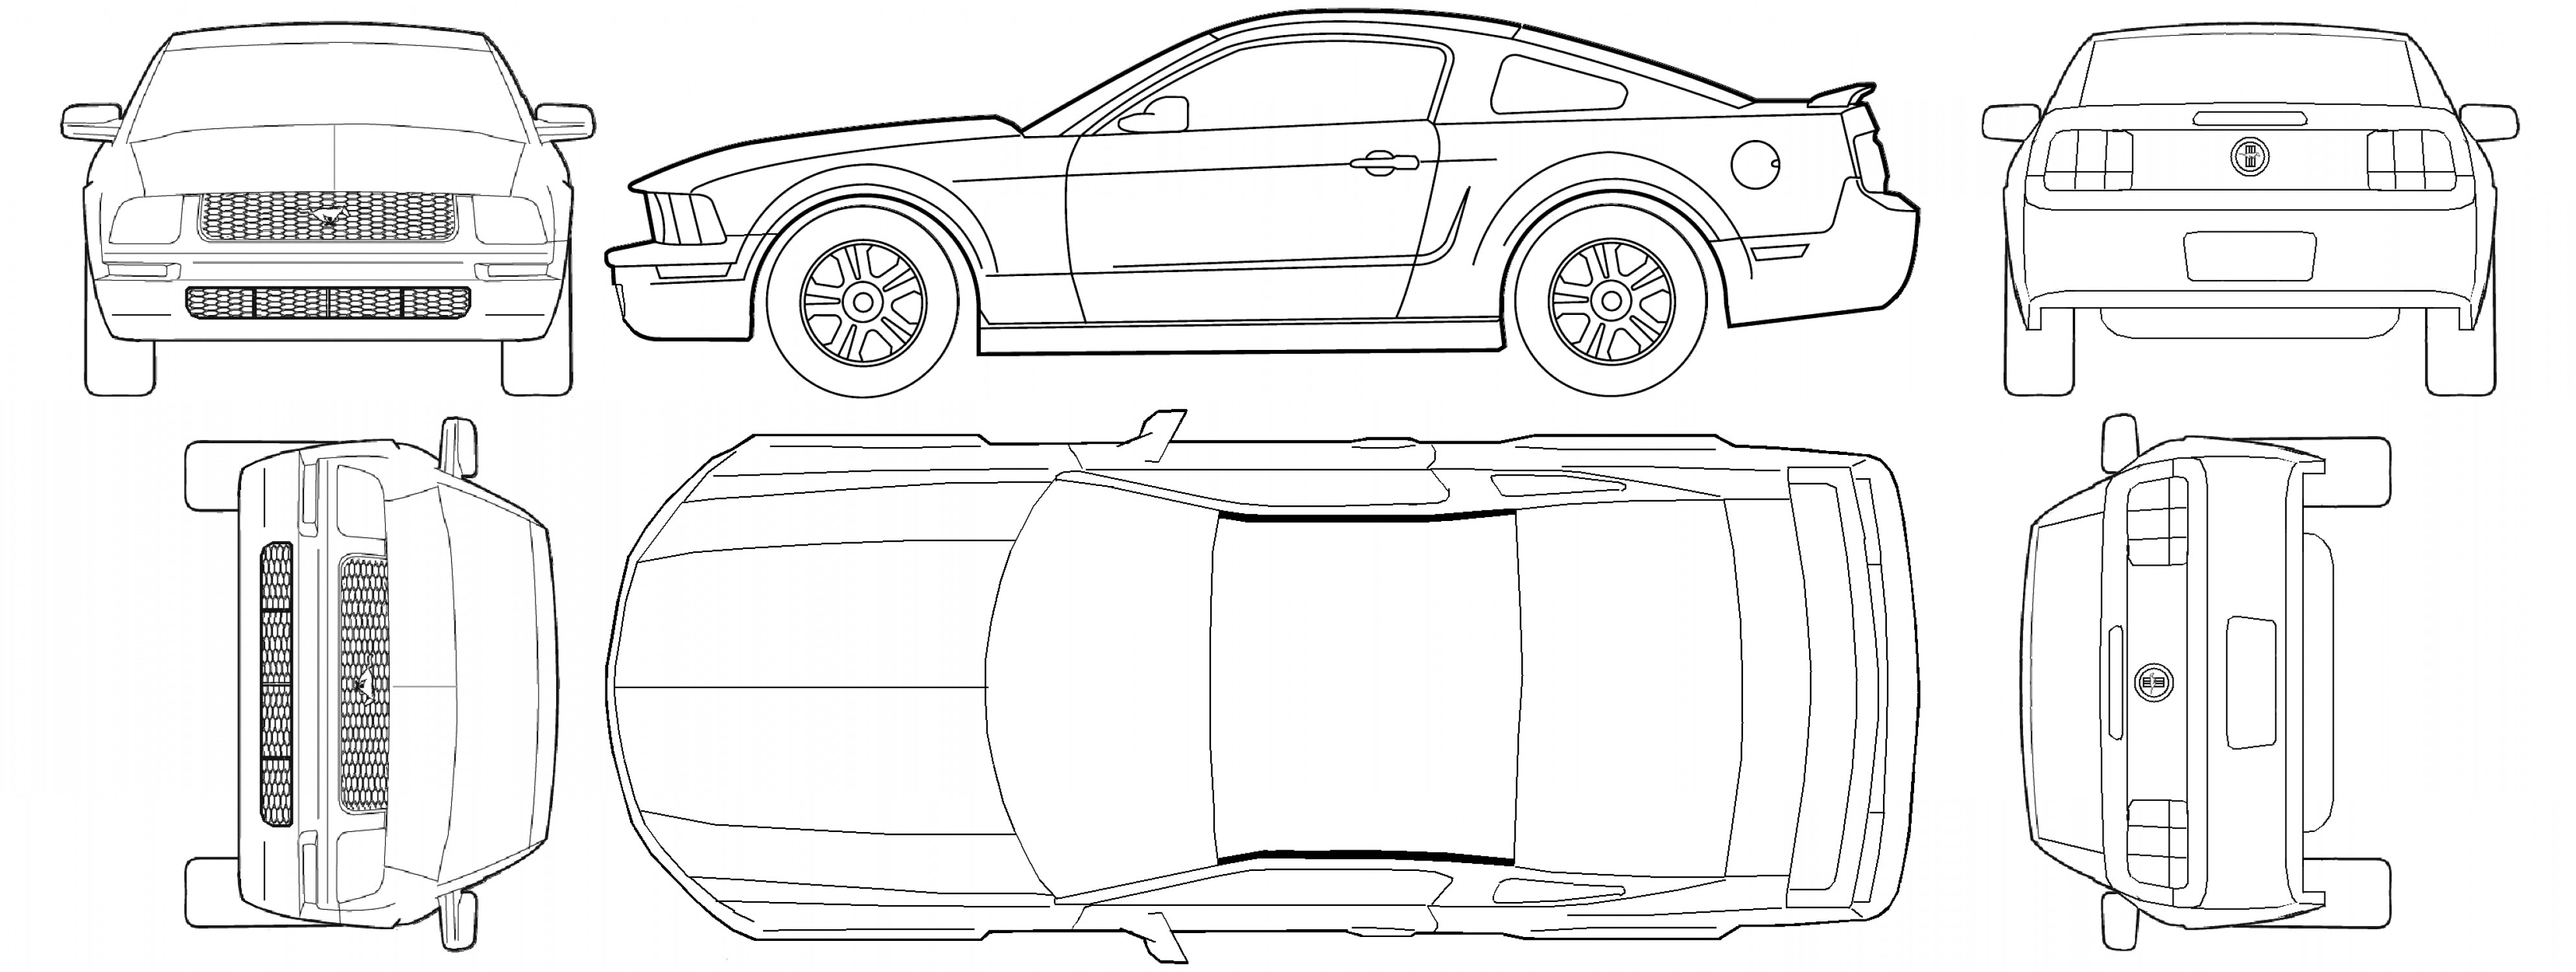 Ford Mustang Gt Drawing Vector